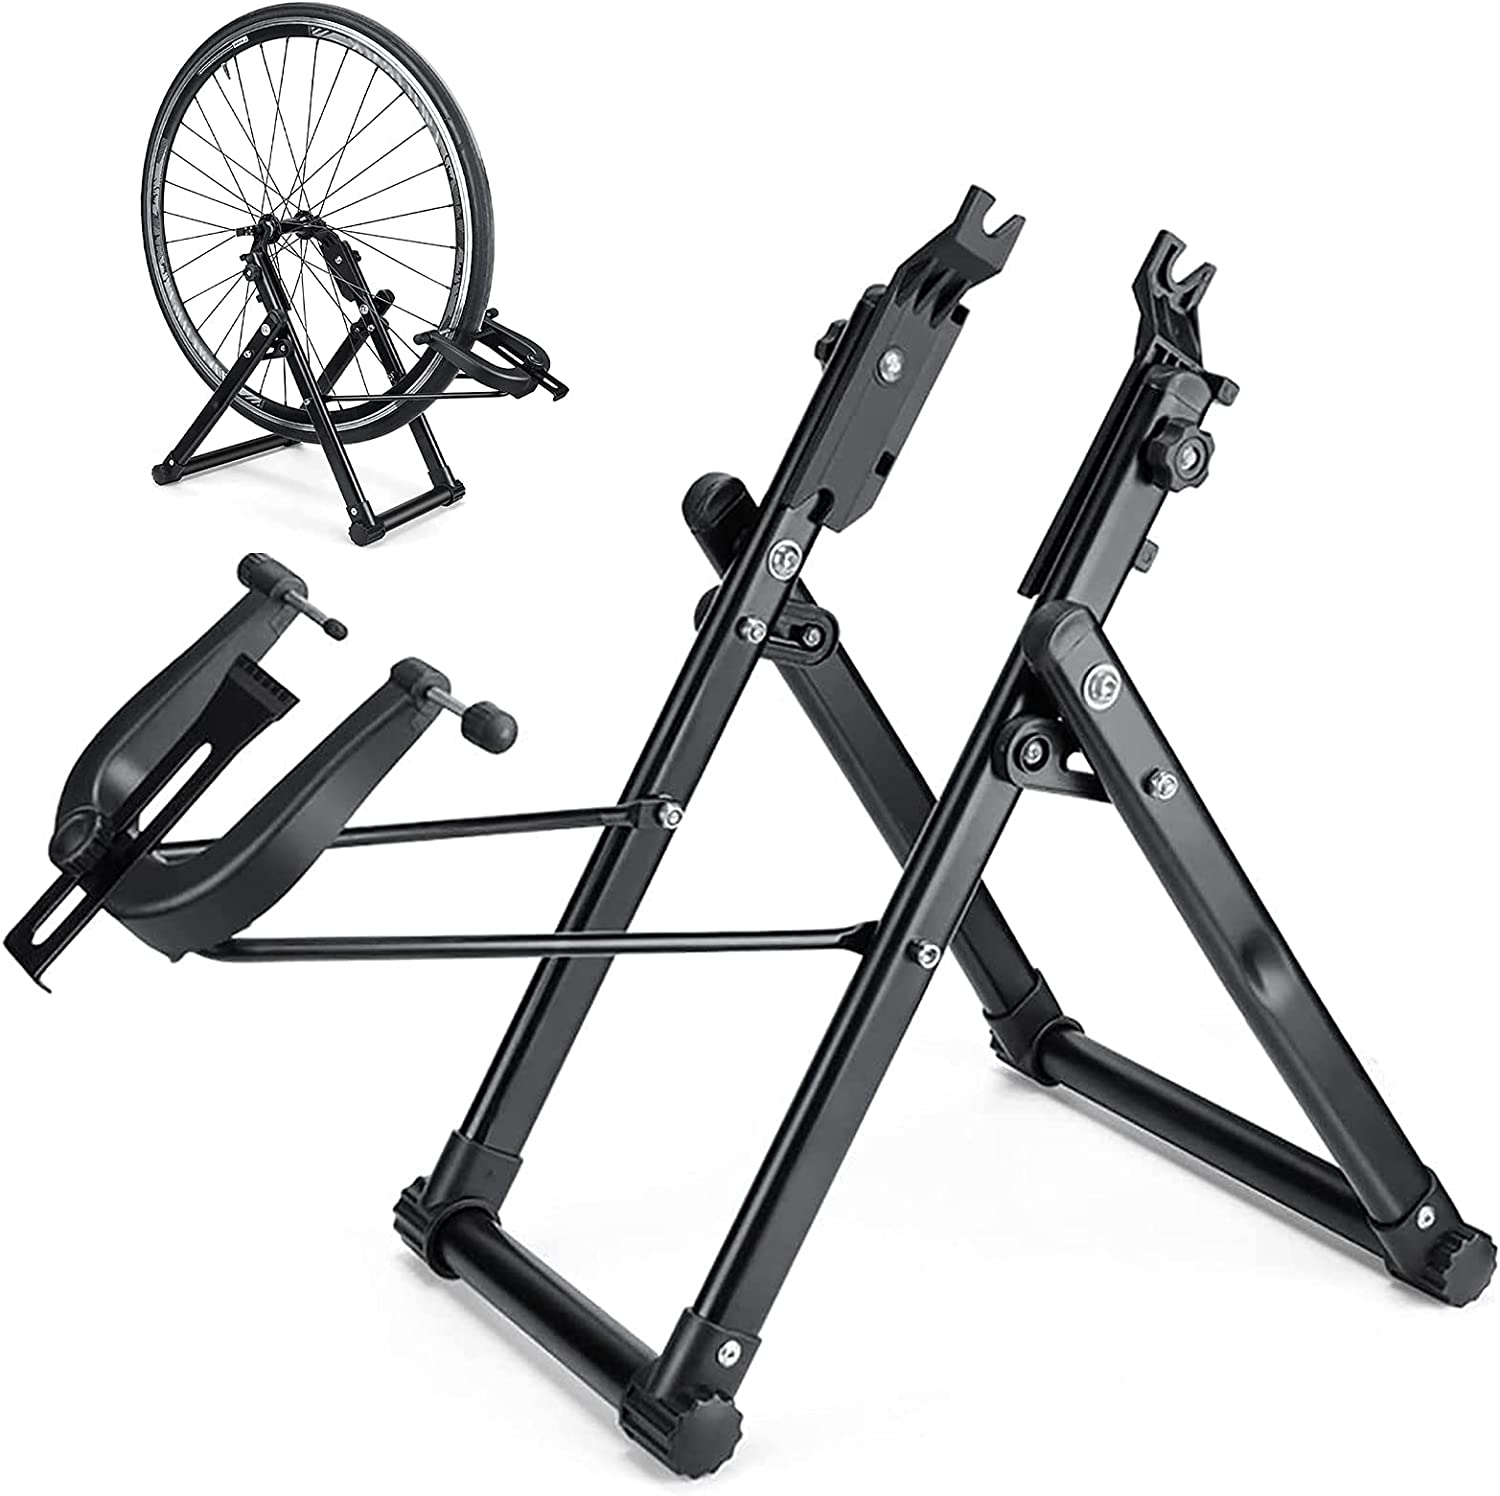 YIKBIK Bike Wheel Limited time for free shipping Truing Virginia Beach Mall Bicyc Tire Stand Bicycle